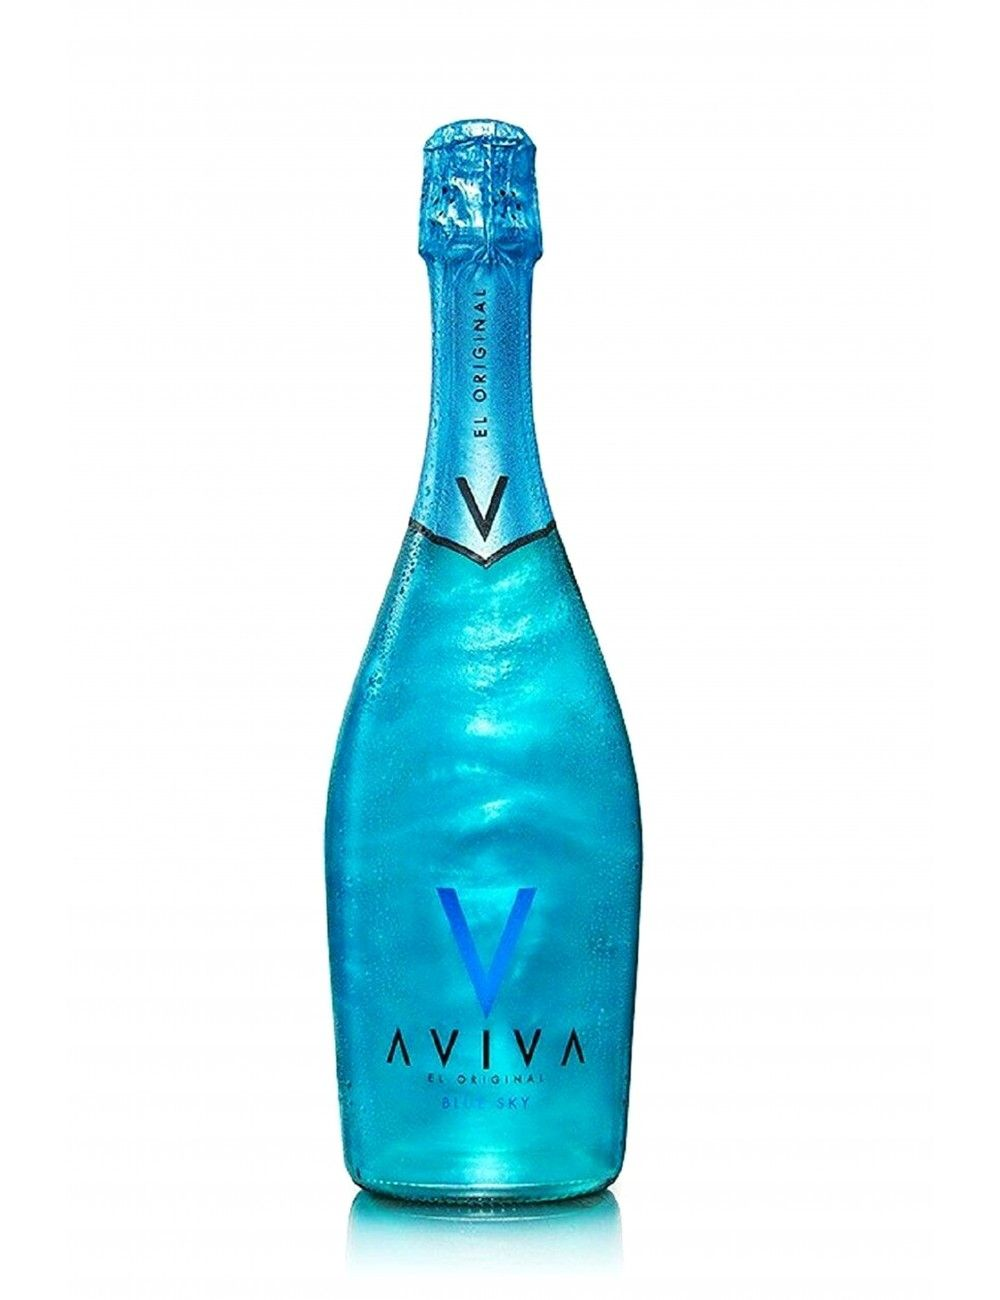 Aviva spumante Blue Sky 75 cl